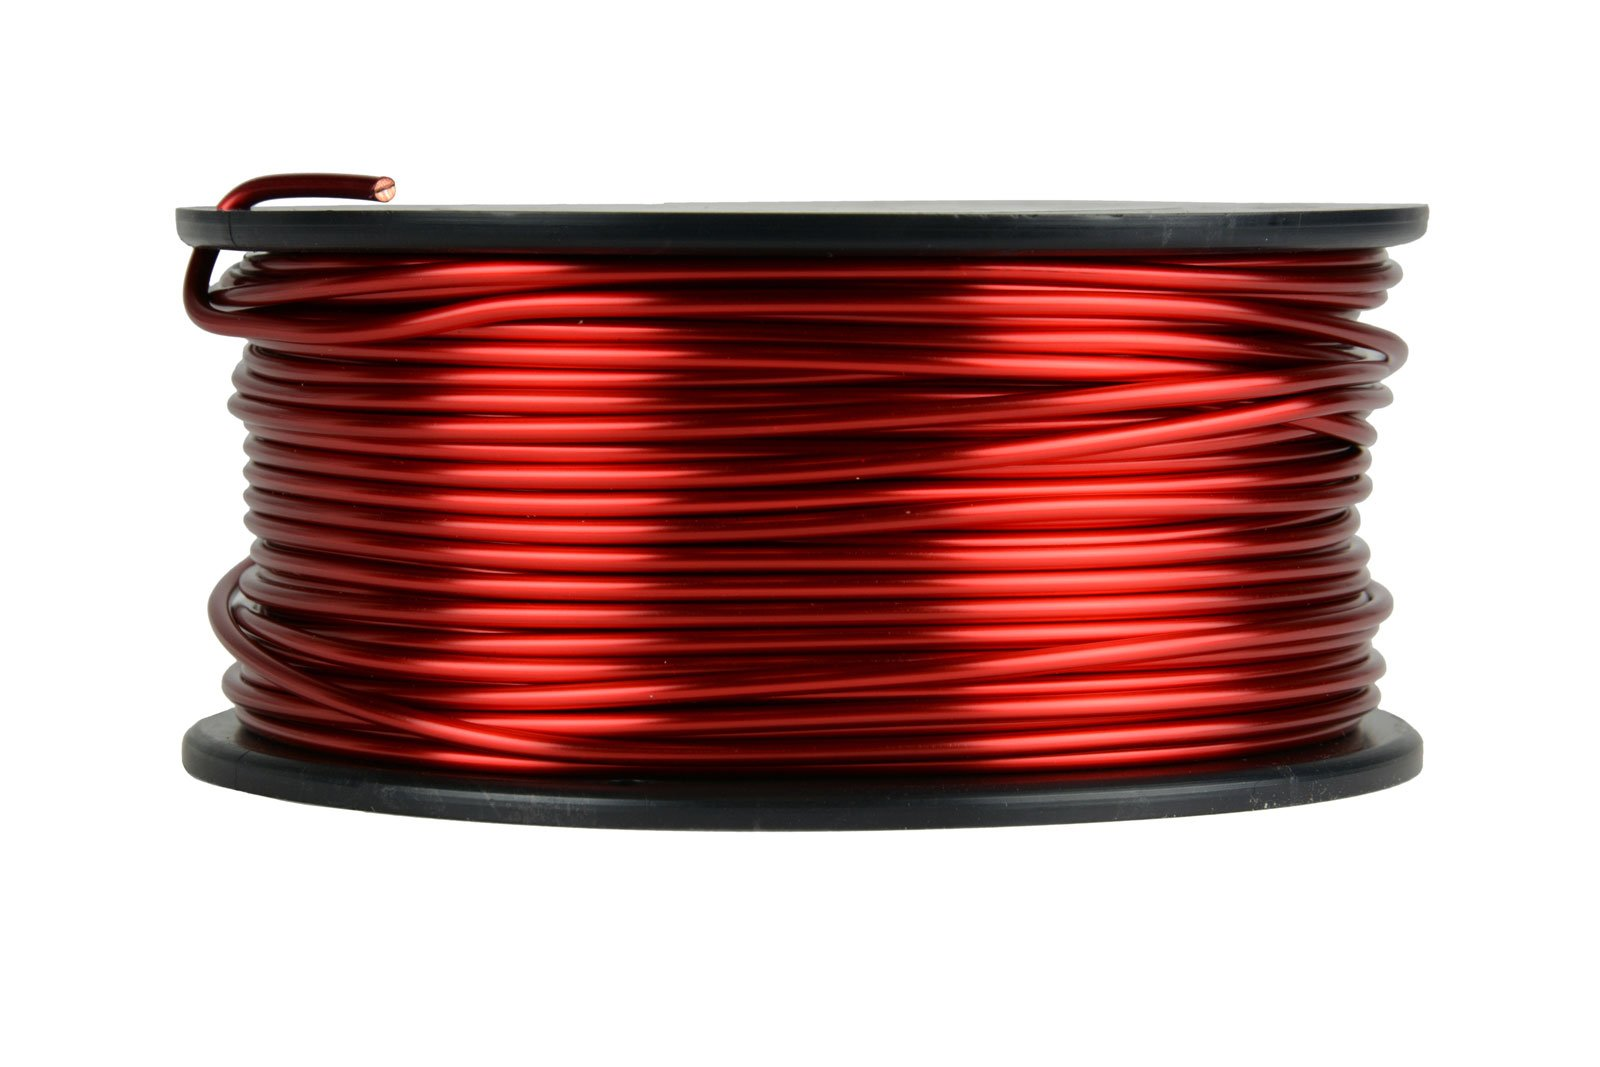 TEMCo 13 AWG Copper Magnet Wire - 1.5 lb 94 ft